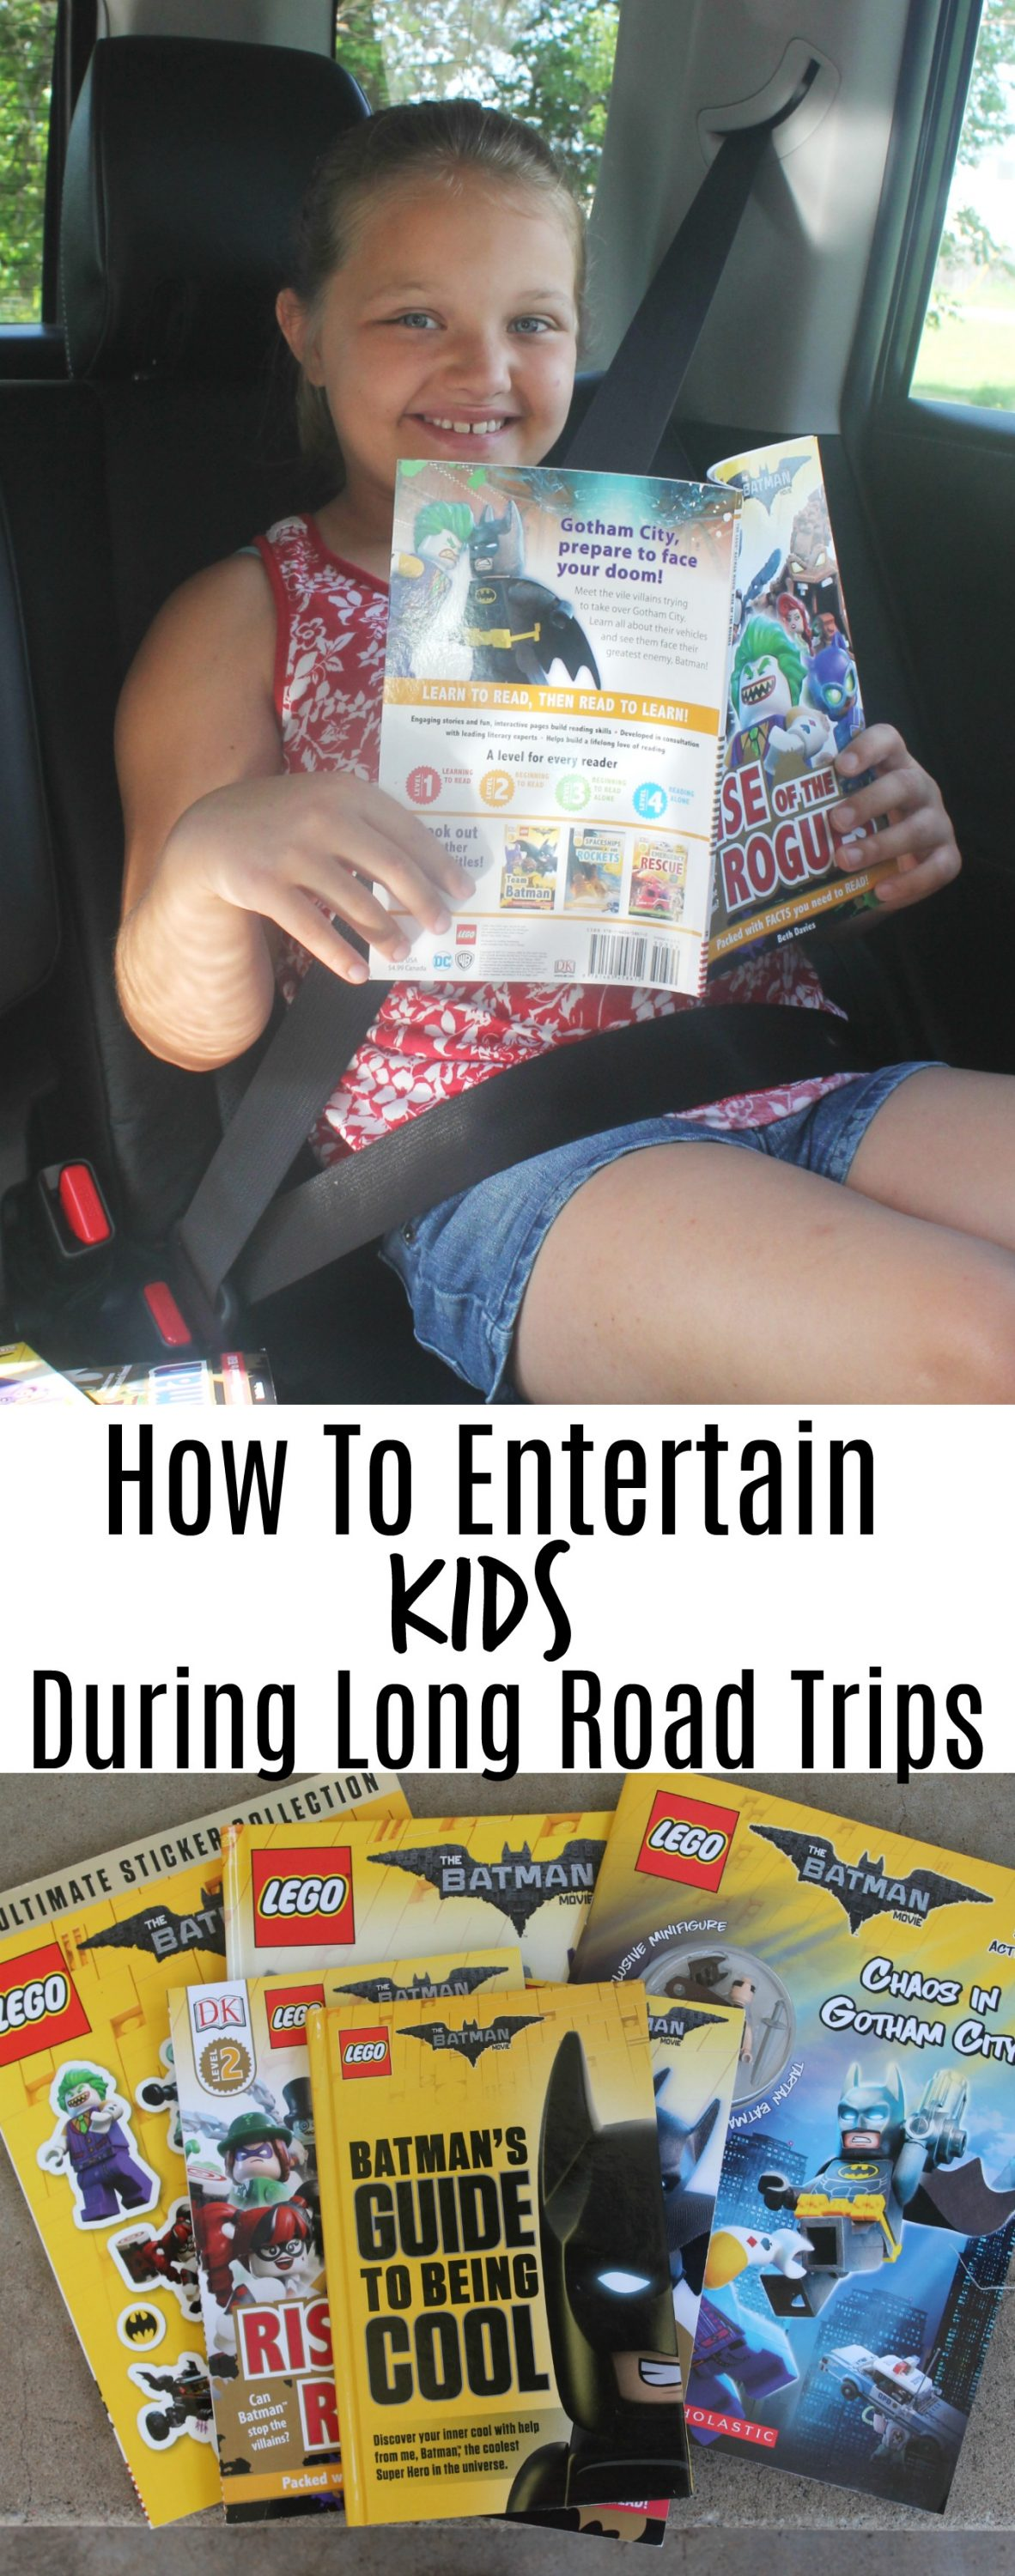 Tips on How to Entertain Kids During Long Road Trips. Road Trip Activities.